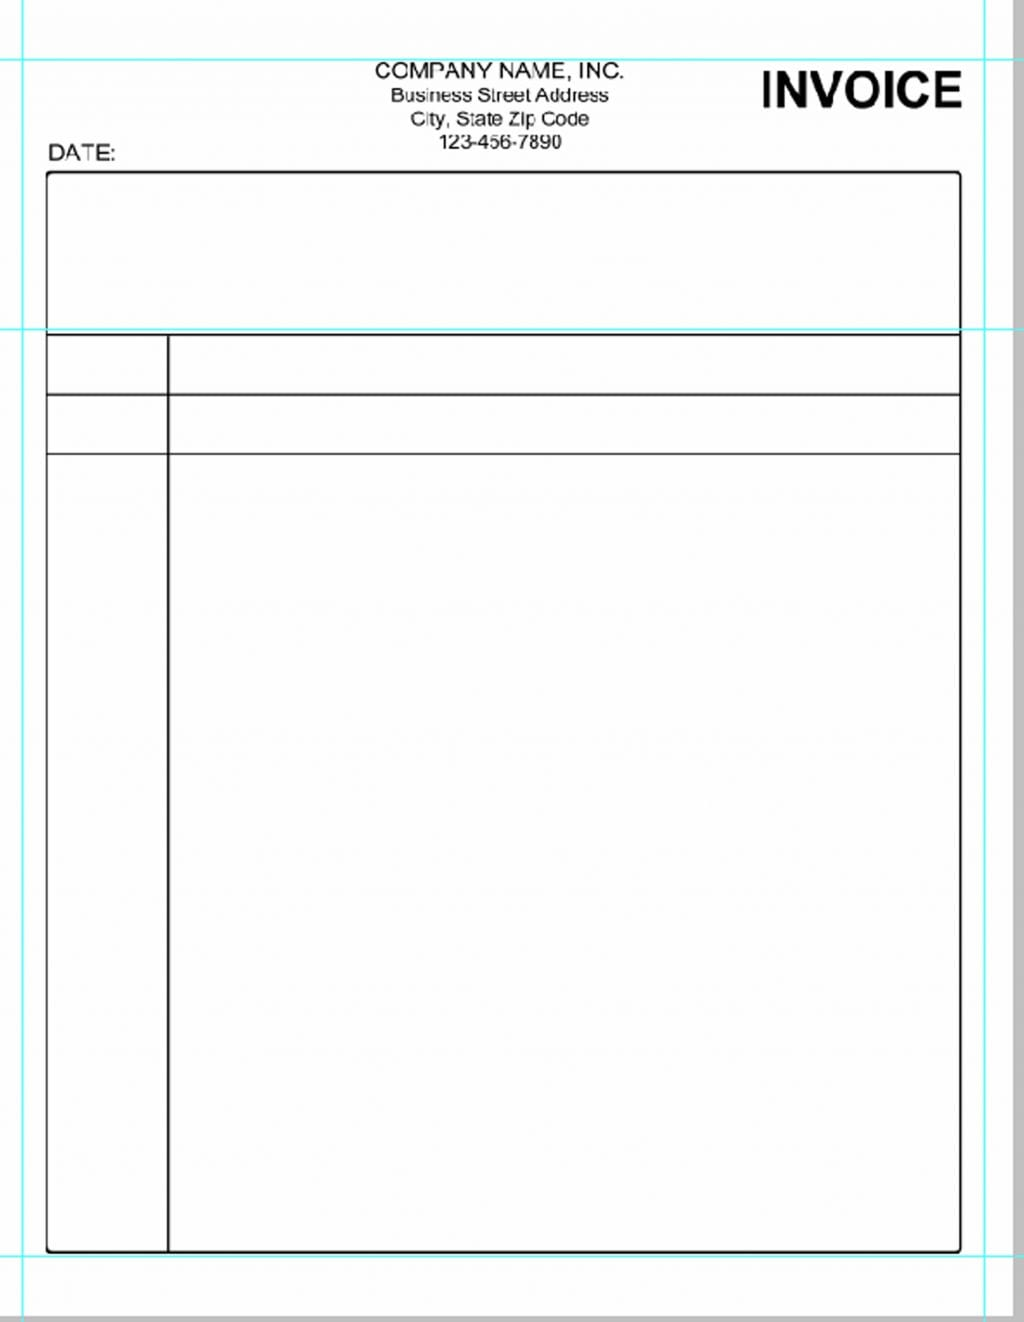 Invoice Template Word Invoice Template Google Docs Spreadsheet Templates for Busines Spreadsheet Templates for Busines Invoice Template Google Docs